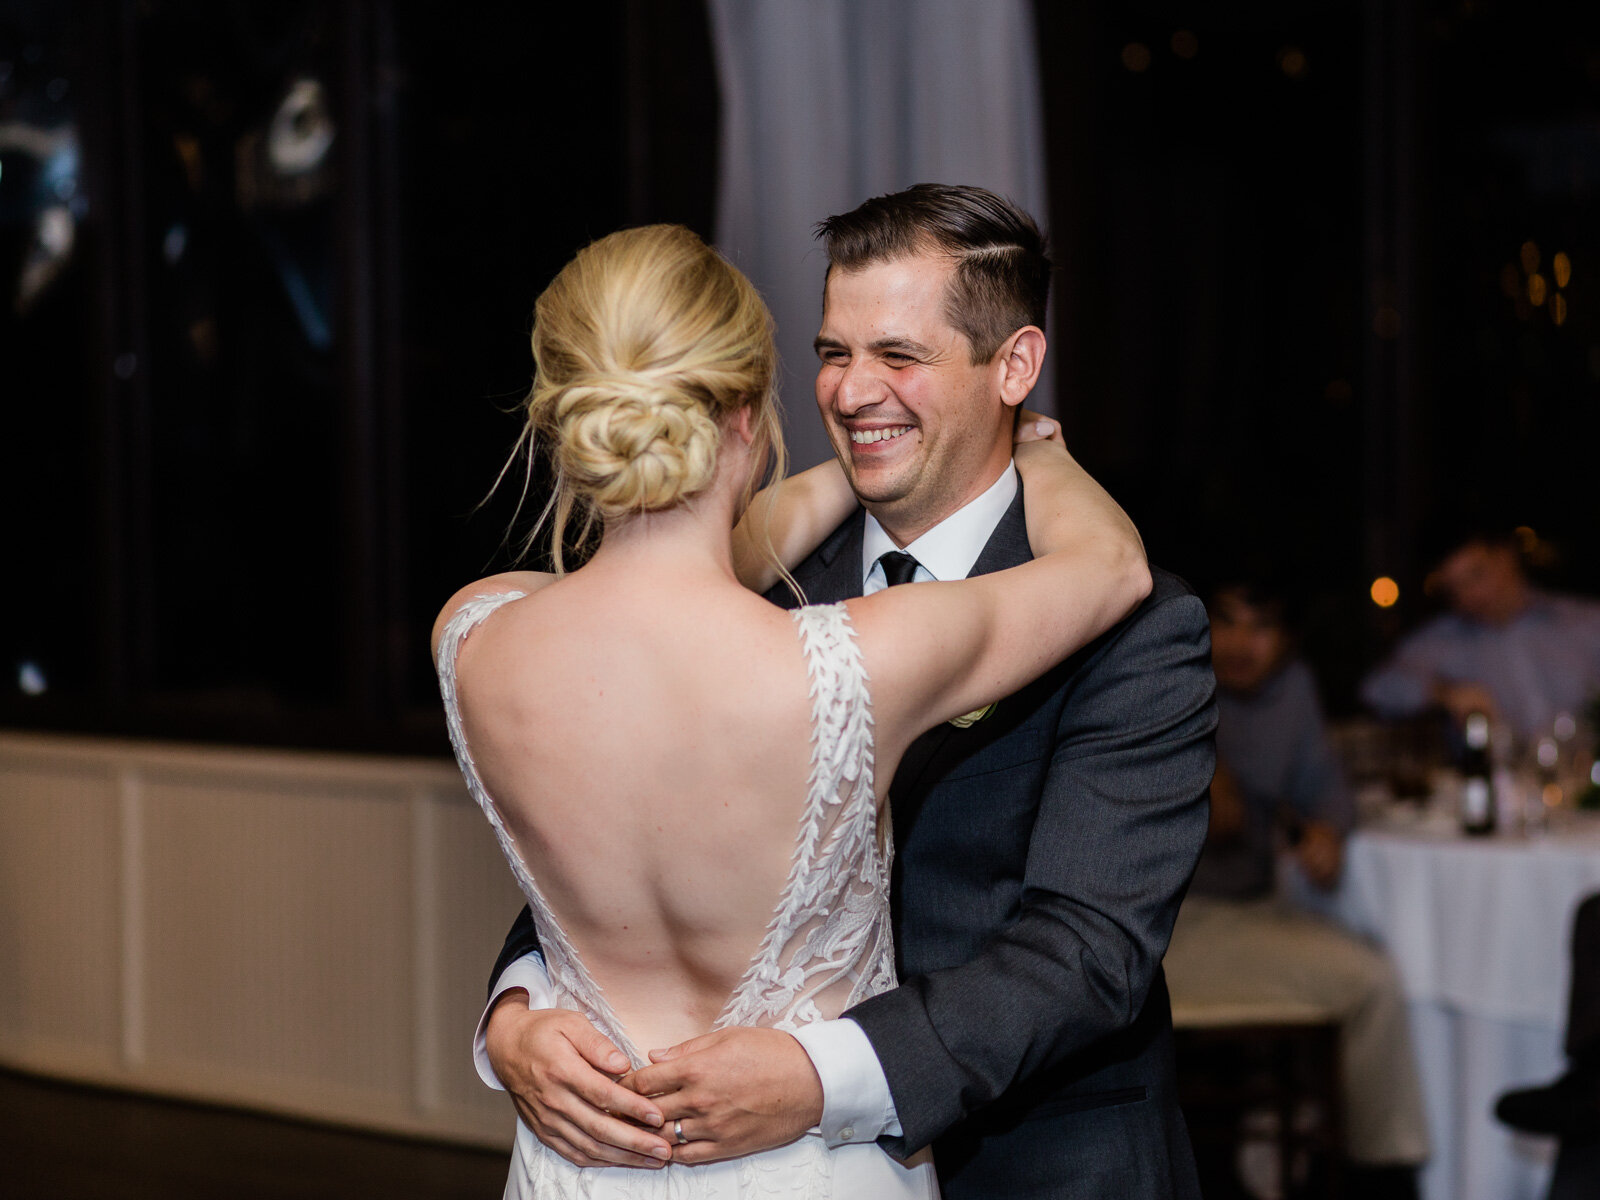 Classic Wedding Photography at the Club at Hillbrook-49.jpg